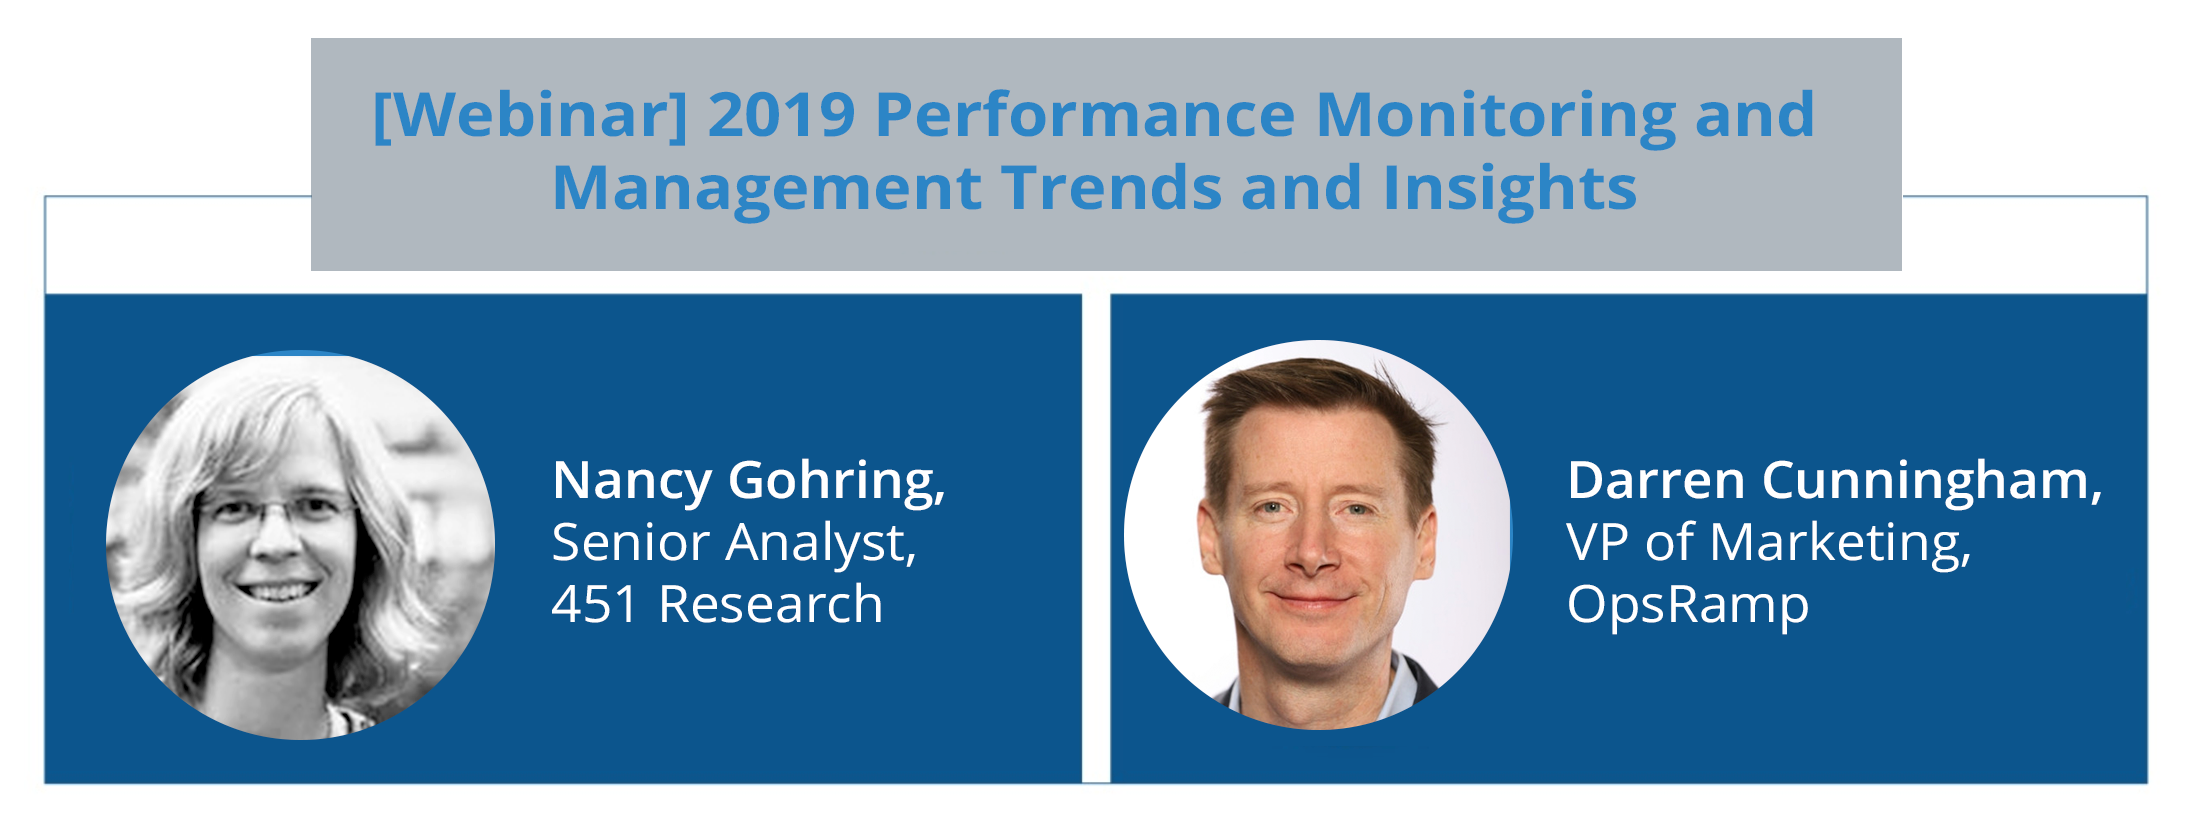 451 Research Webinar on Performance Monitoring